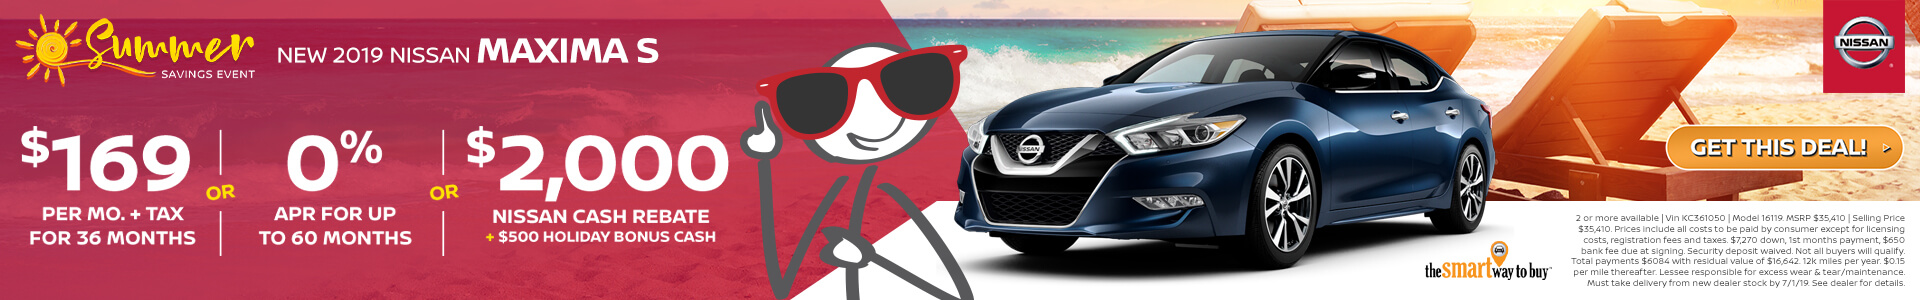 2019 Nissan Maxima Lease for $169